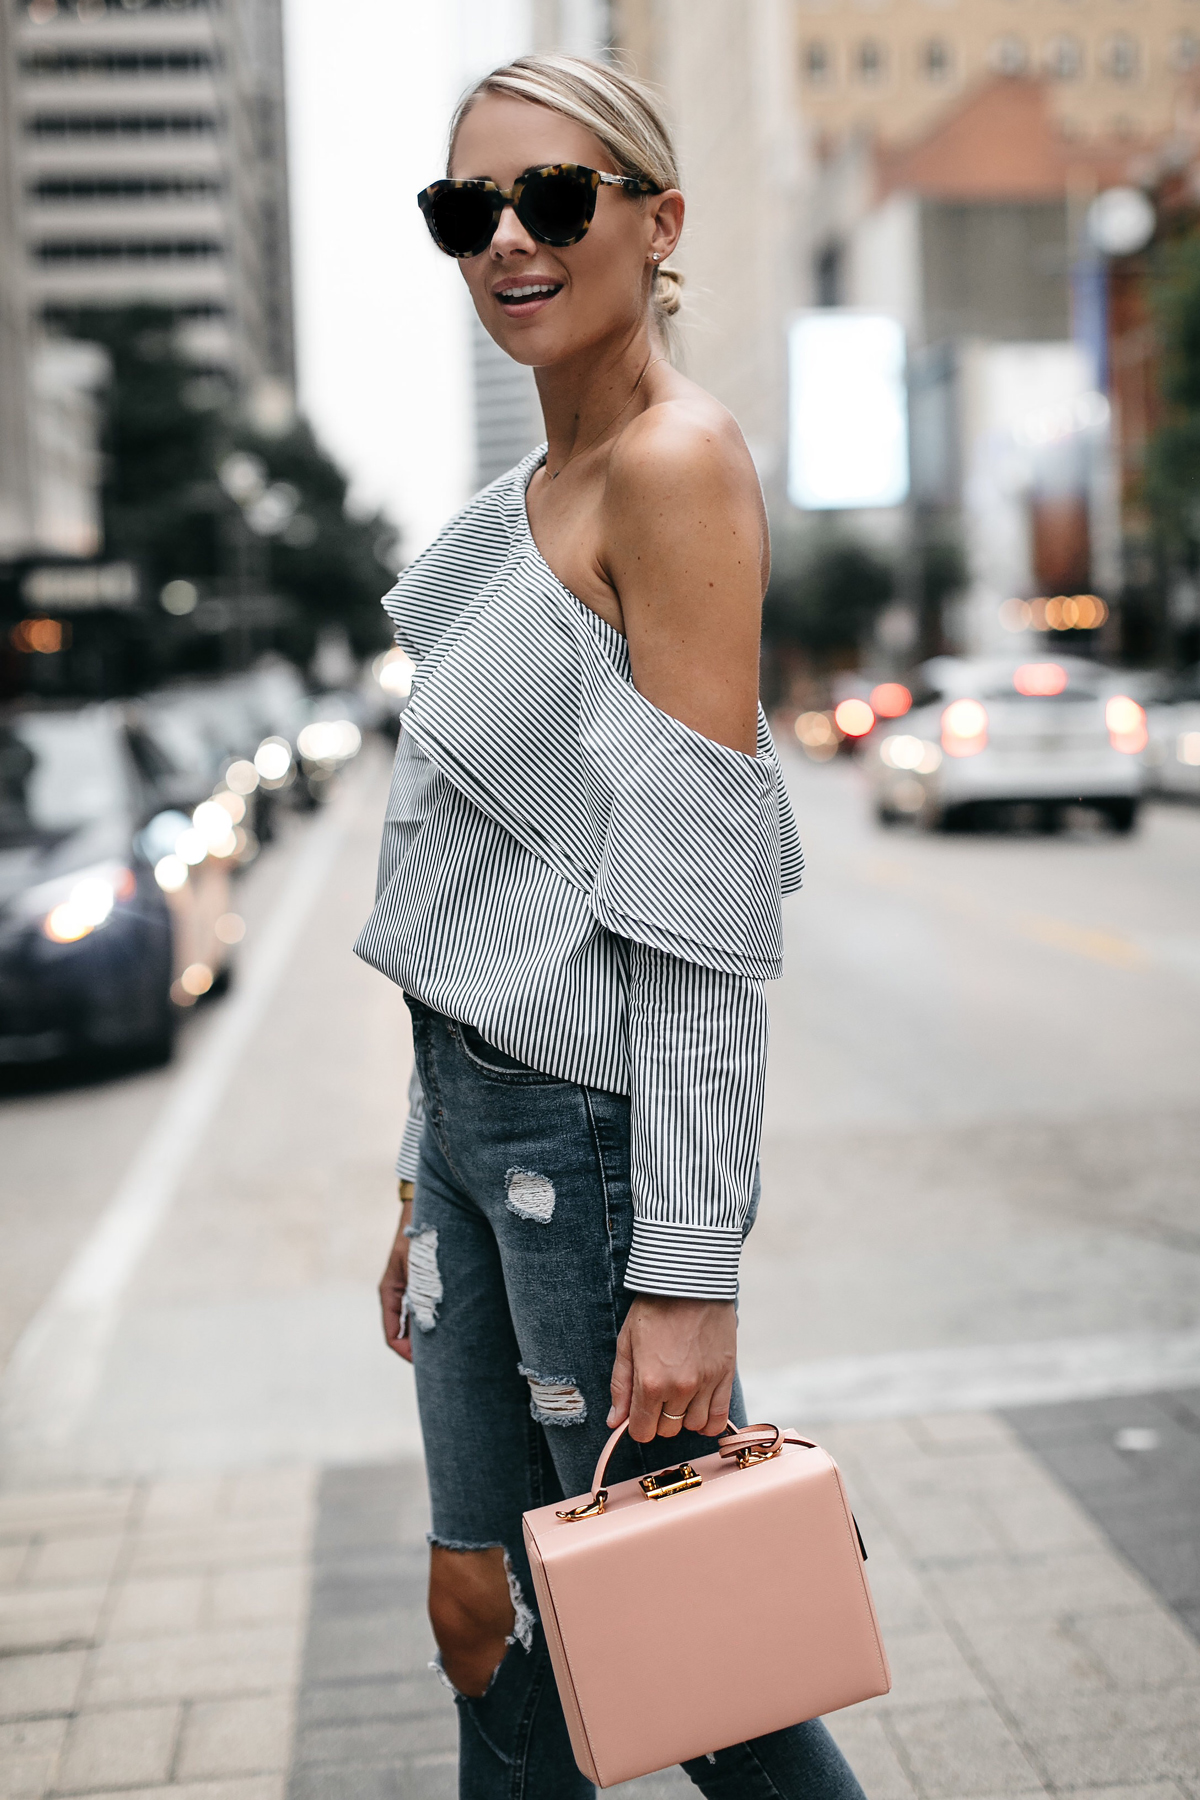 Blonde Woman Wearing Club Moonaco Striped One Shoulder Ruffle Top Ripped Skinny Jeans Mark Cross Saffiano Pink Handbag Fashion Jackson Dallas Blogger Fashion Blogger Street Style